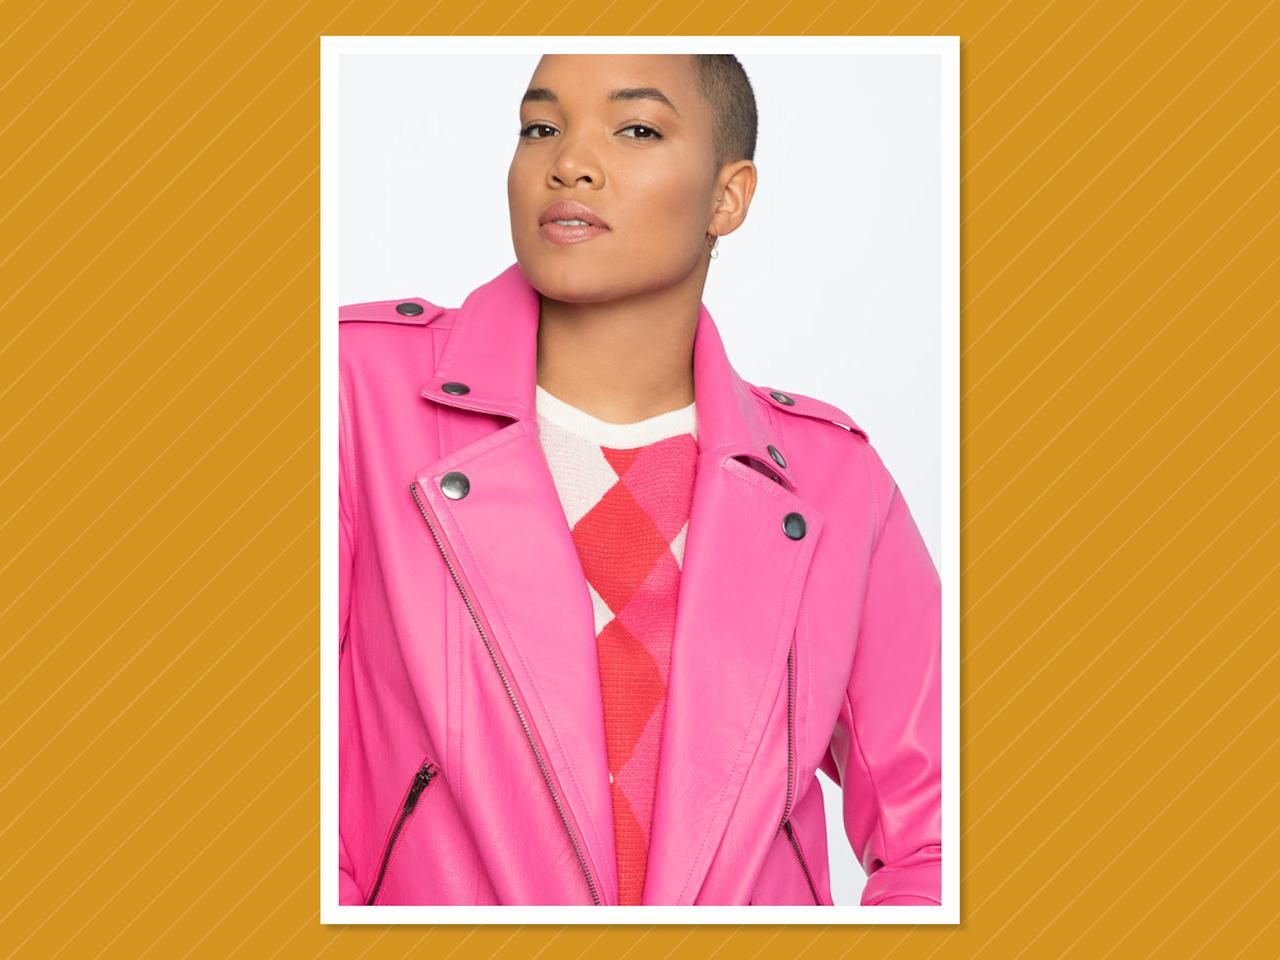 "<p>This classic-fit faux-leather jacket in pink is a cool investment piece you'll wear over and over. (Photo: Eloquii)<br /><a rel=""nofollow"" href=""https://fave.co/2AdoKNc""><strong>SHOP IT:</strong></a> $75 (was $150), <a rel=""nofollow"" href=""https://fave.co/2AdoKNc"">eloquii.com</a> </p>"